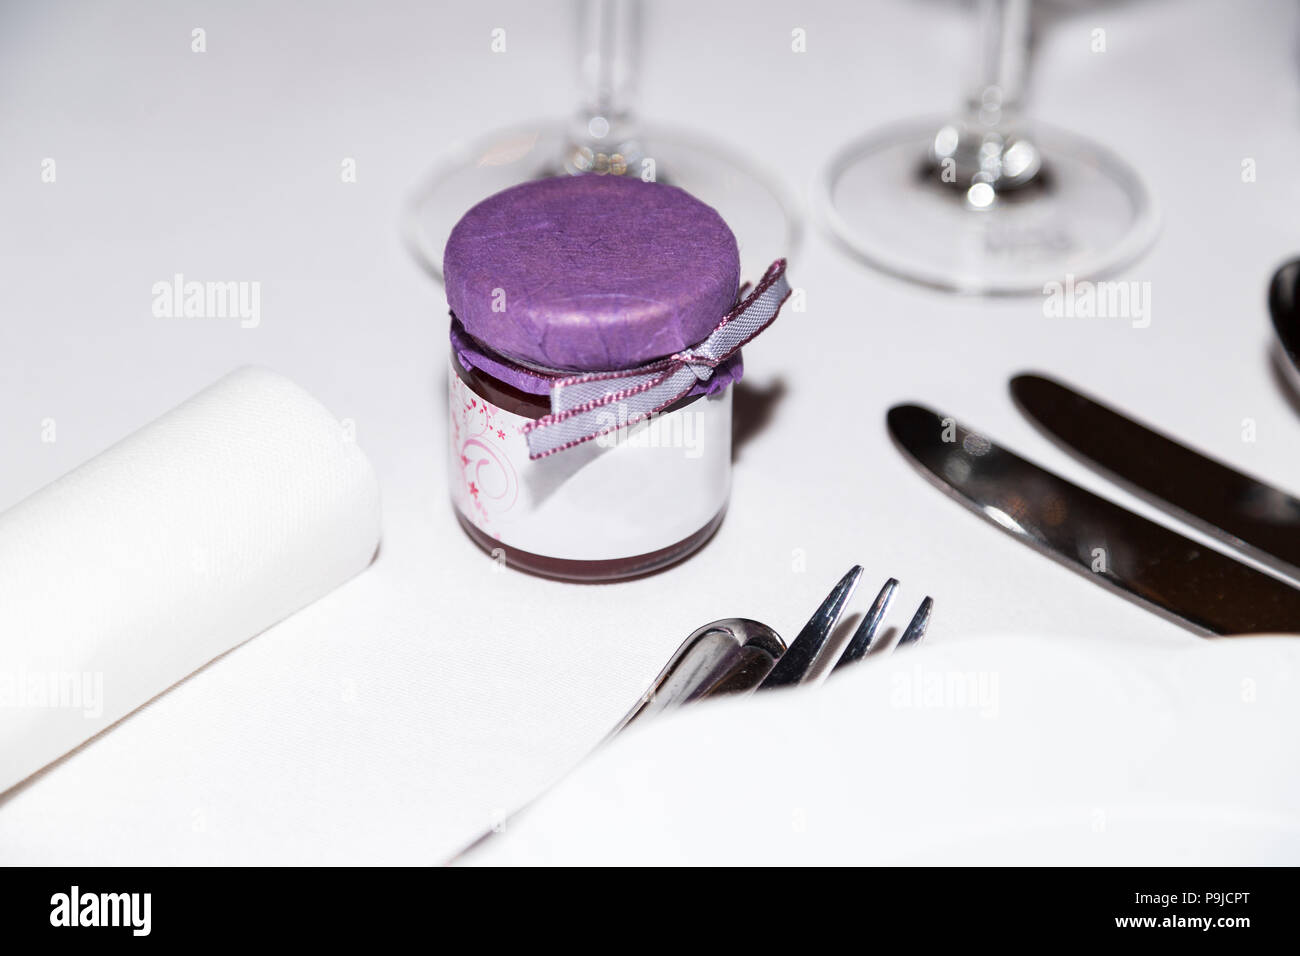 Jar of decorated confiture standing at wedding party table close-up - Stock Image